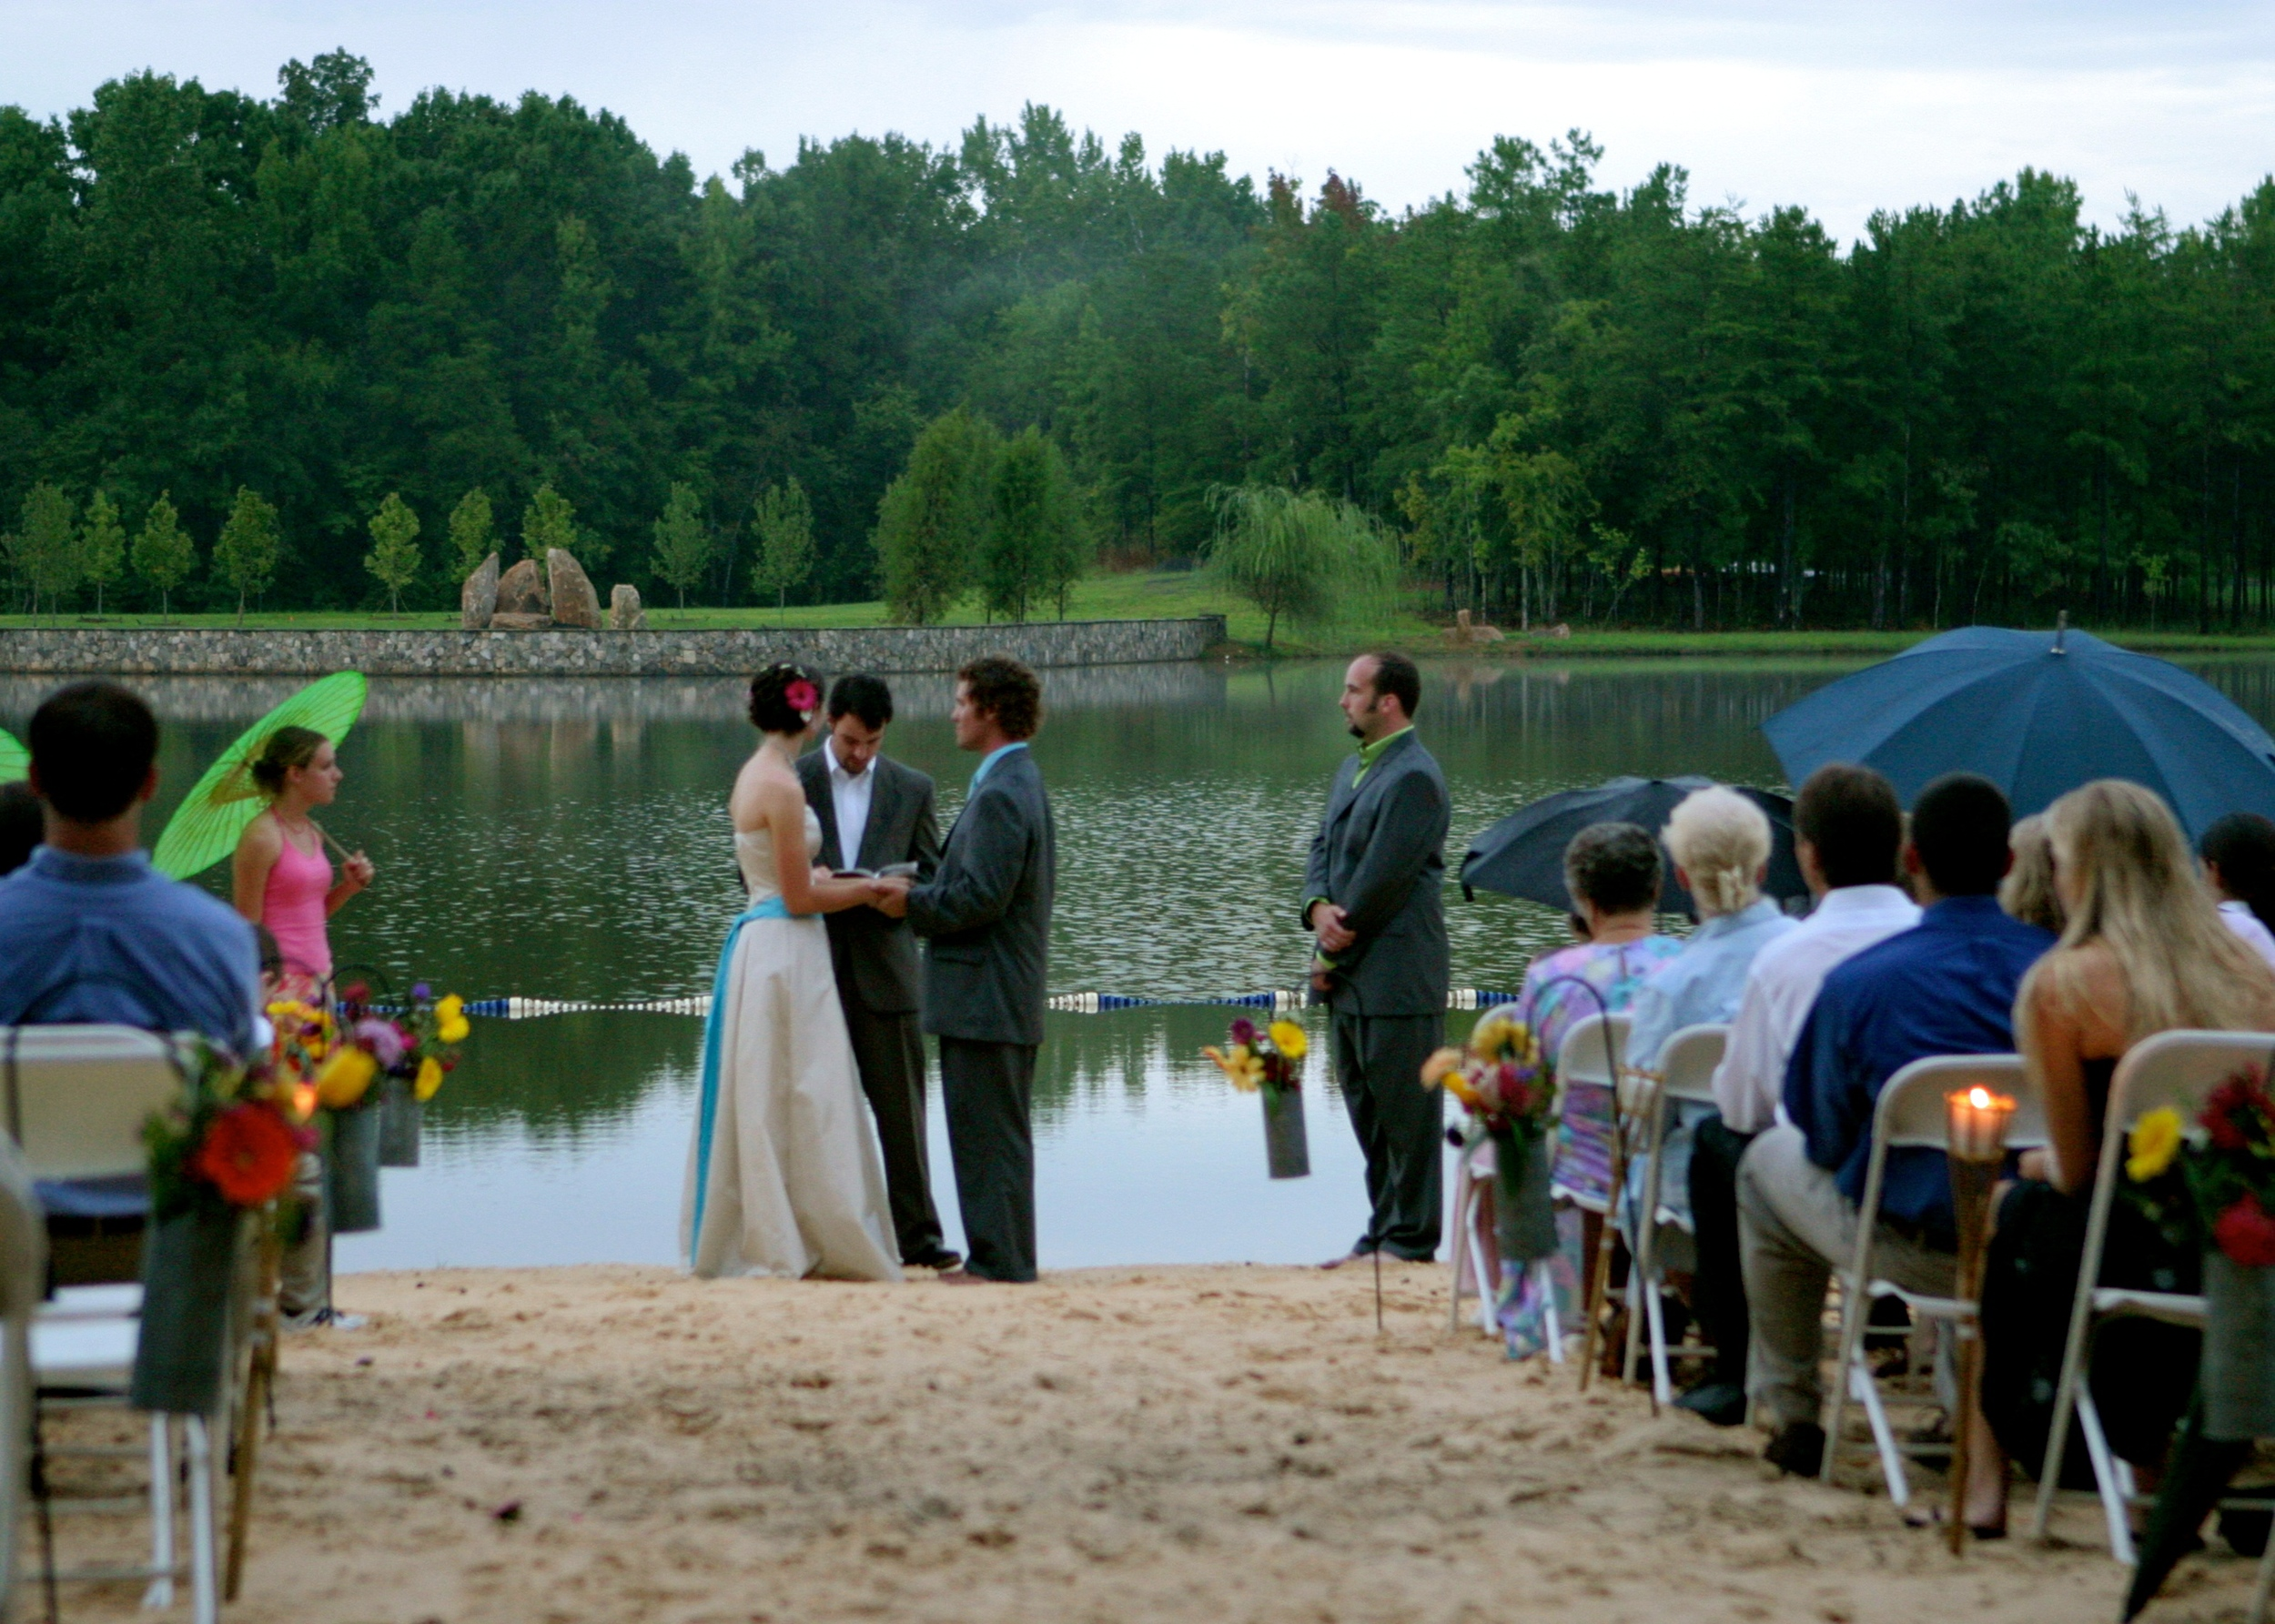 Getting married by the lake at camp.